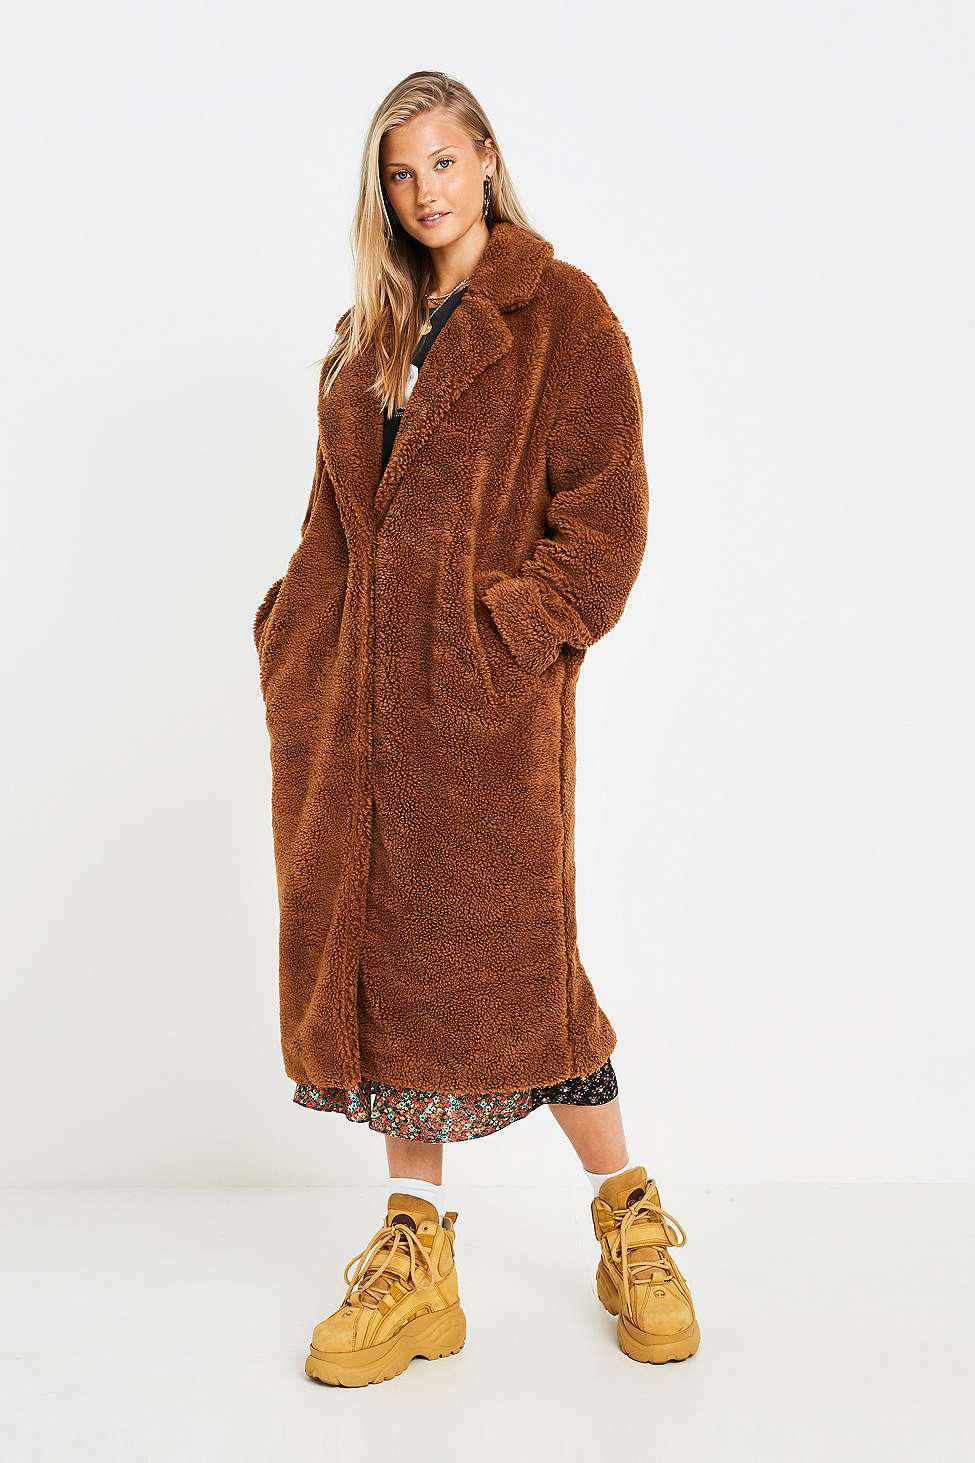 ba7f80a0c Urban Outfitters Uo Long Tan Teddy Coat - Womens Xs in Brown - Lyst